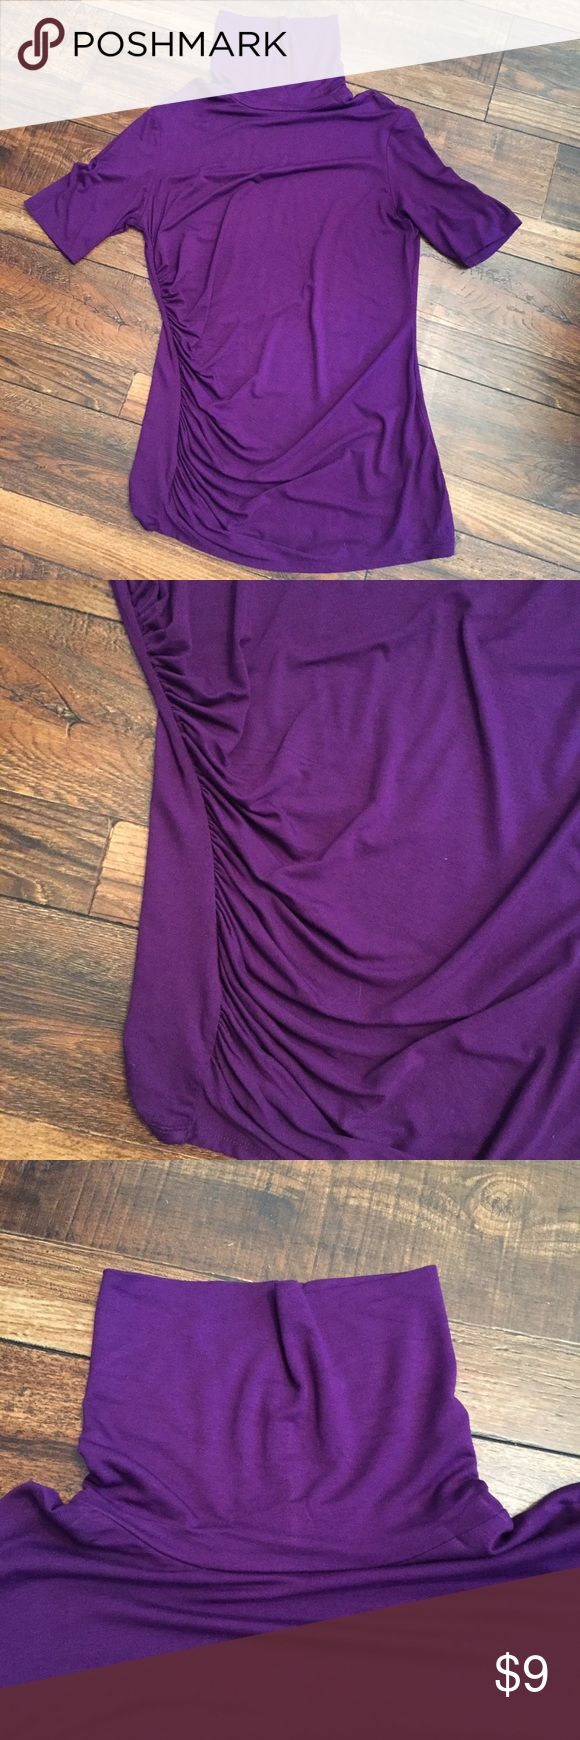 NY&Co Purple Short Sleeve Turtleneck Top NY&Co Purple Short Sleeve Turtleneck Top. Size medium. 95% rayon, 5% spandex. 18 inch across chest, 28 inch length, 5 inch sleeve. Perfect stretch turtleneck with side ruched detail. New York & Company Tops